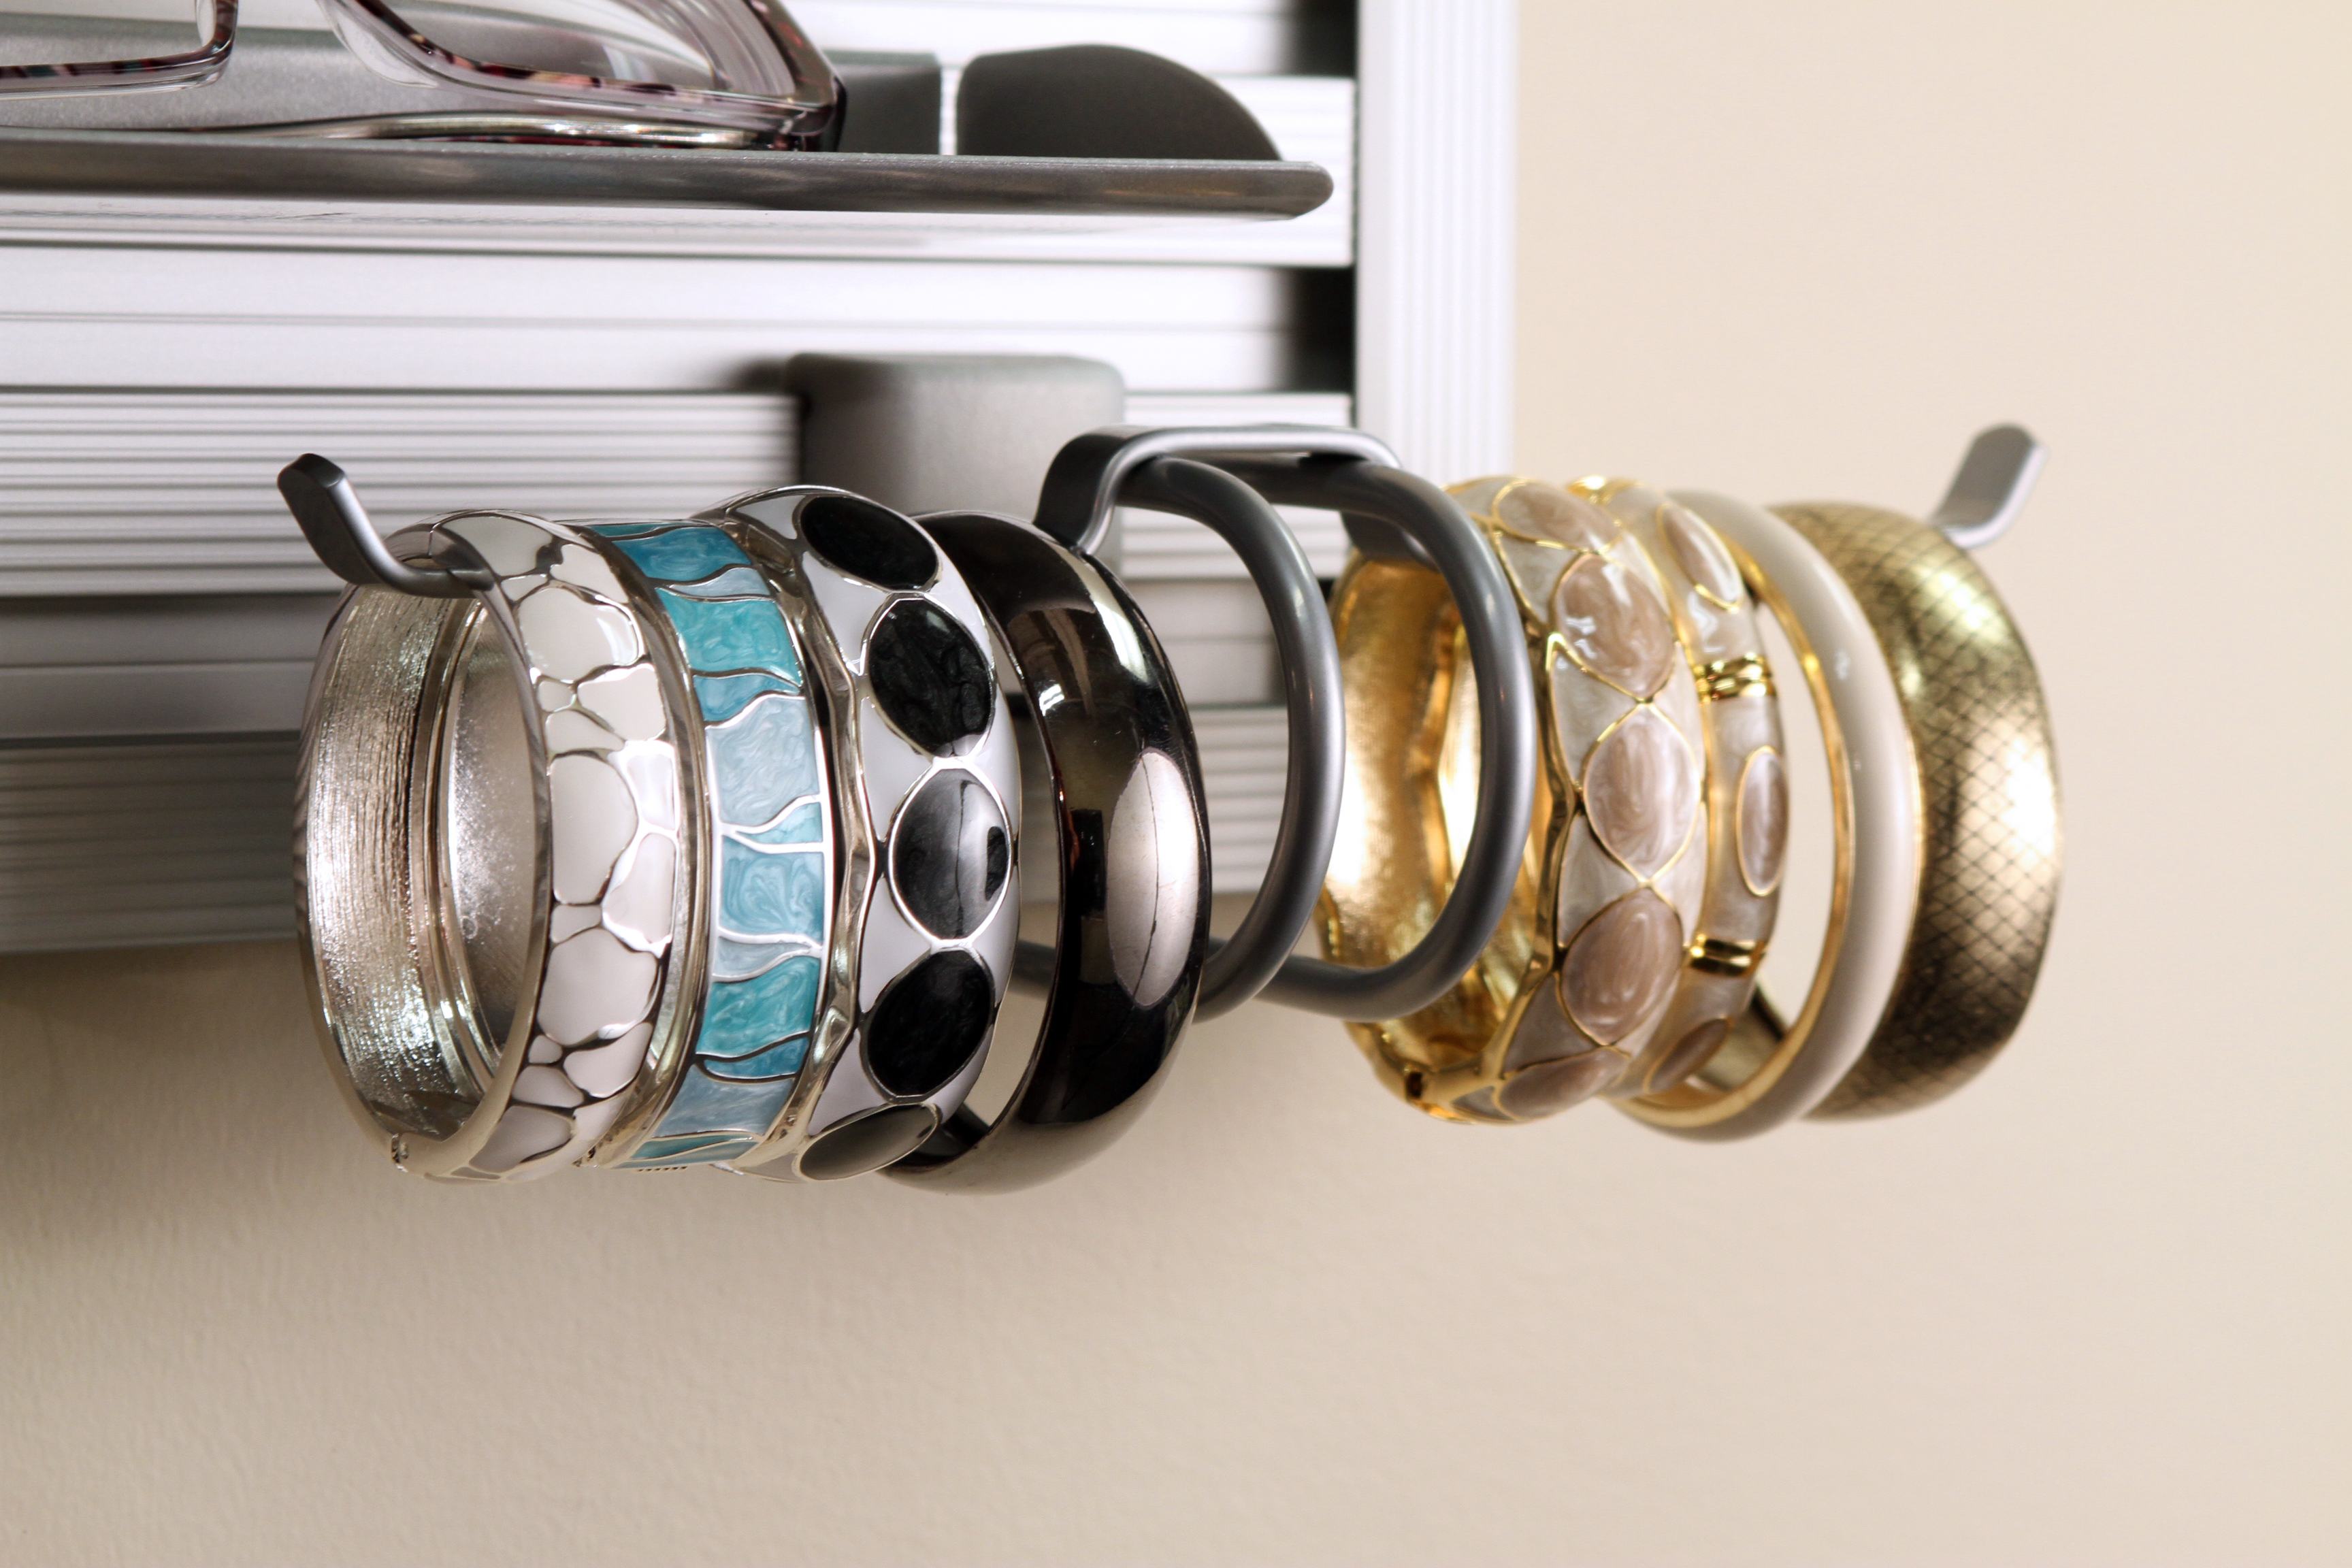 Are your scarves/belts/sunglasses/bracelets in piles with no place to go? Closet Envy can help you organize your accessories in no time flat! #getorganized #organization #dreamcloset